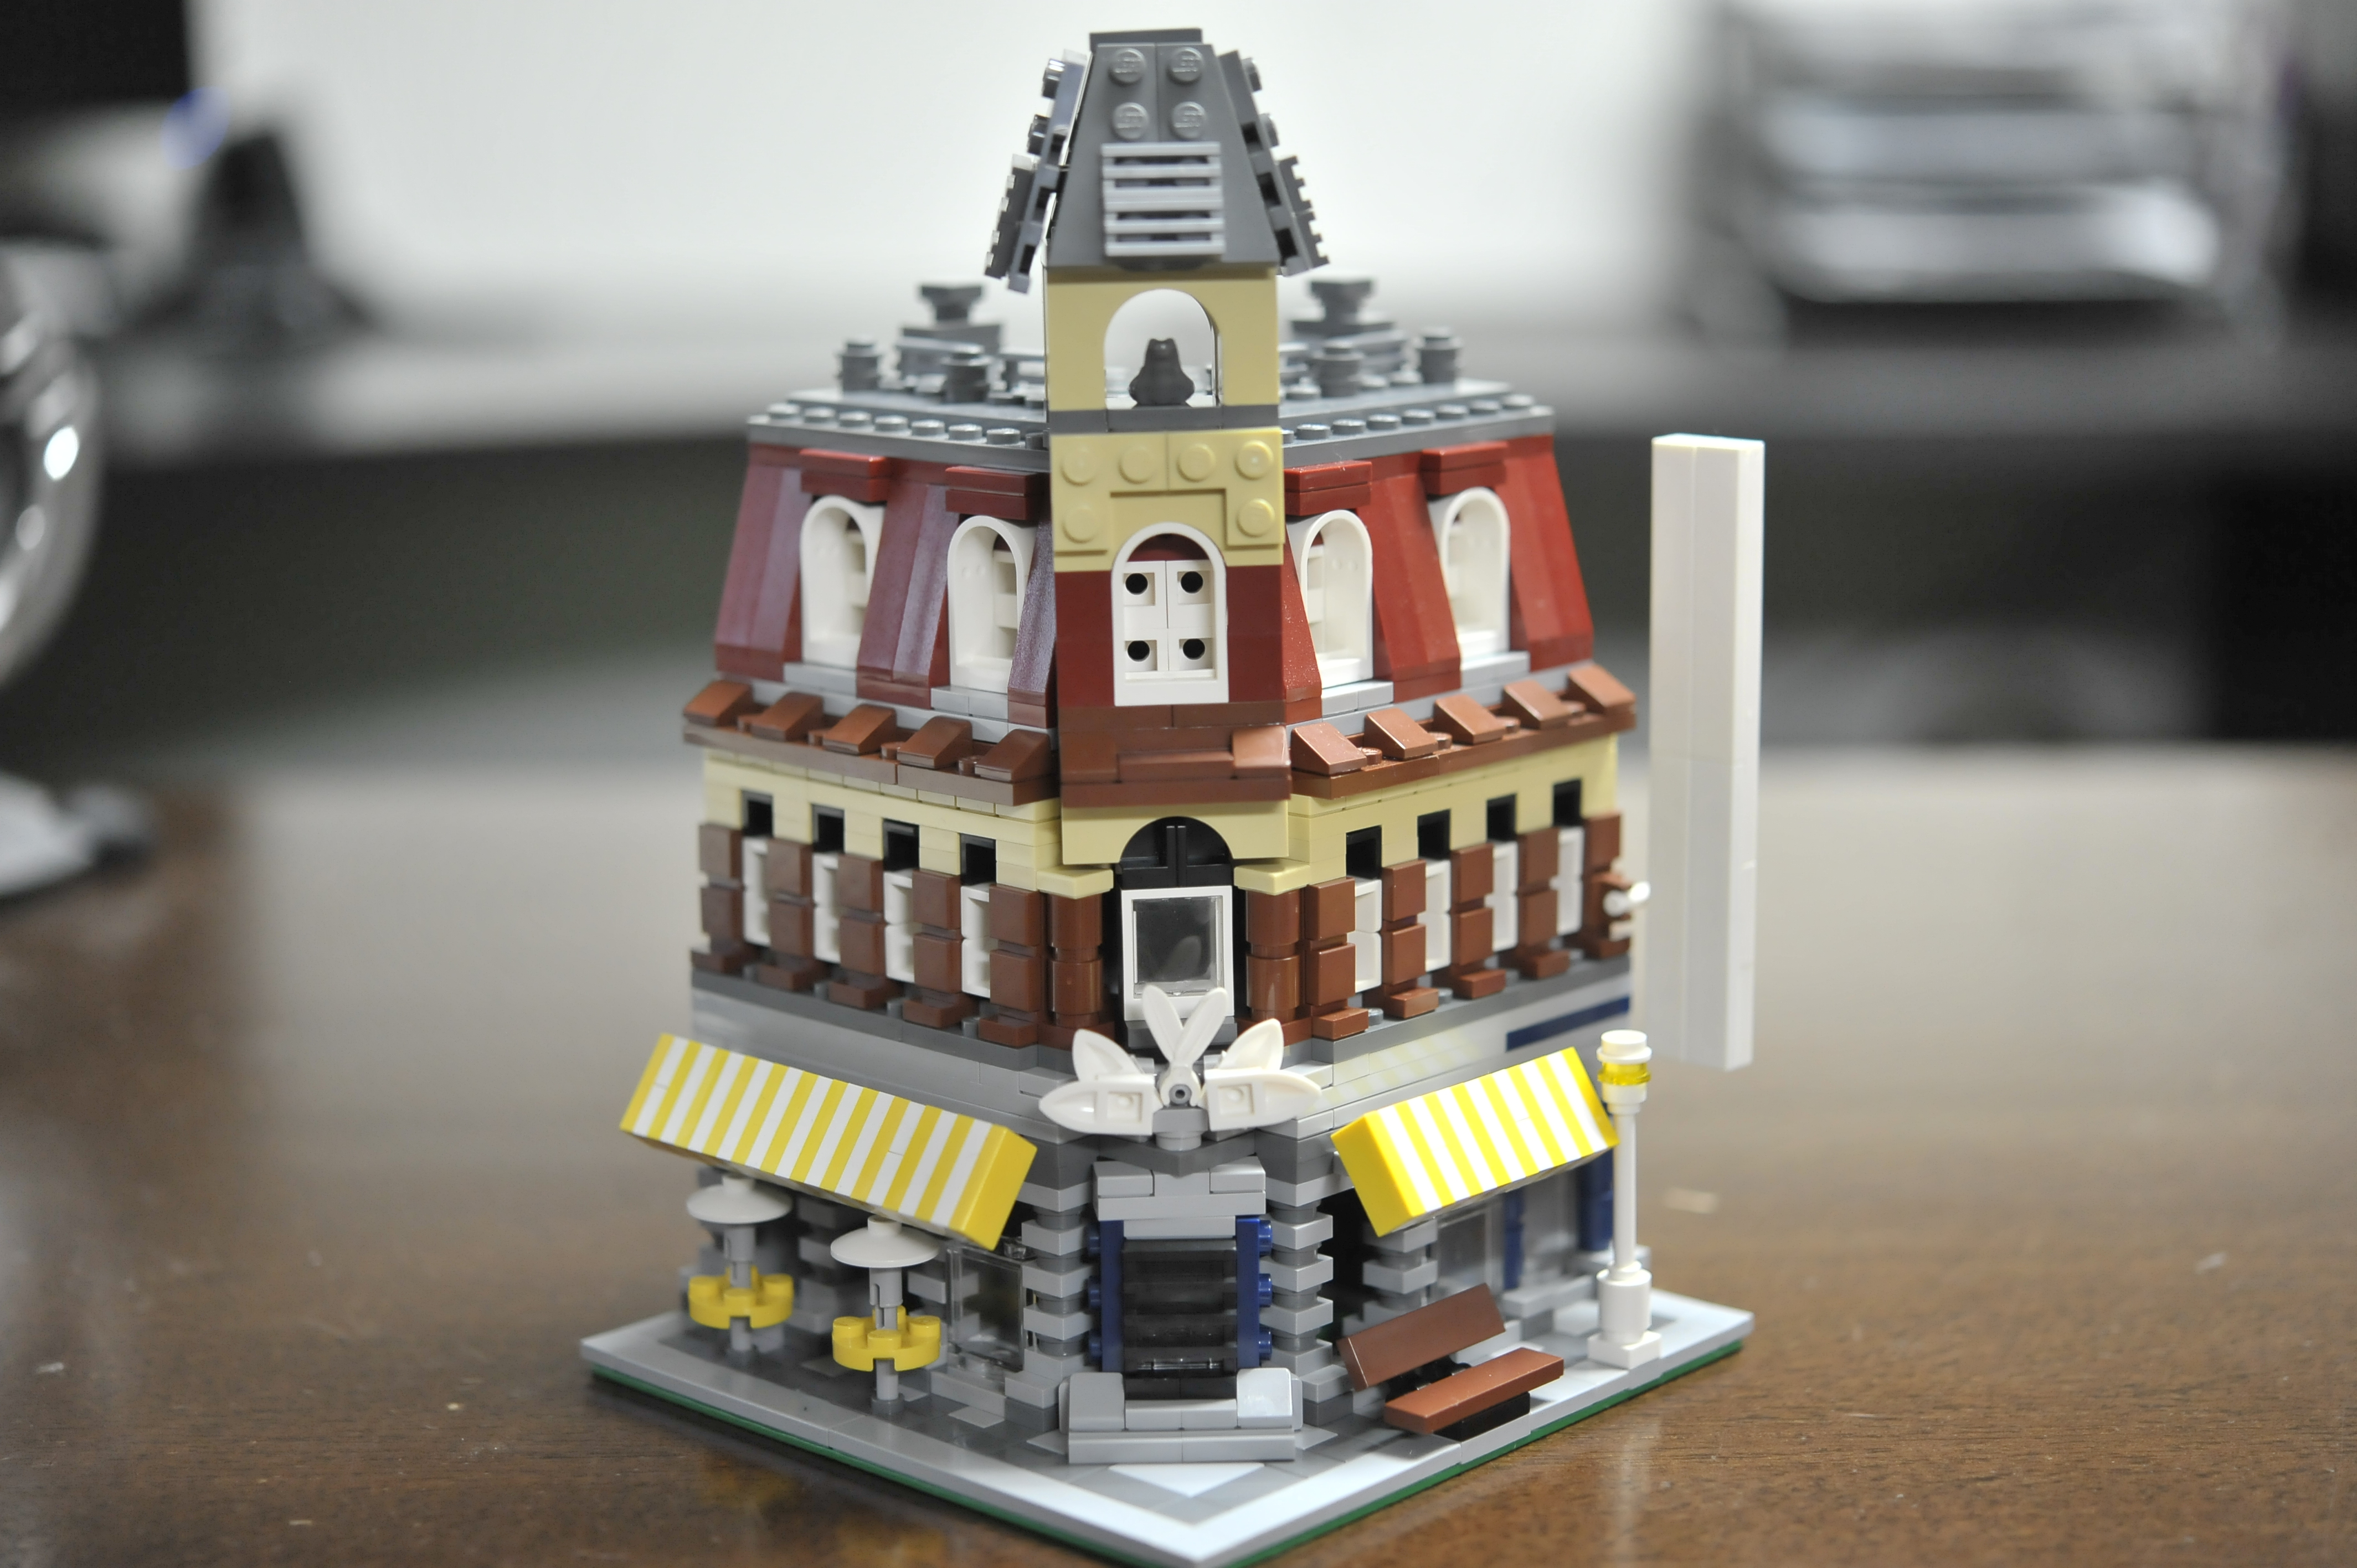 LEGO Cafe Corner Scaled MOC by The Allergy Chef